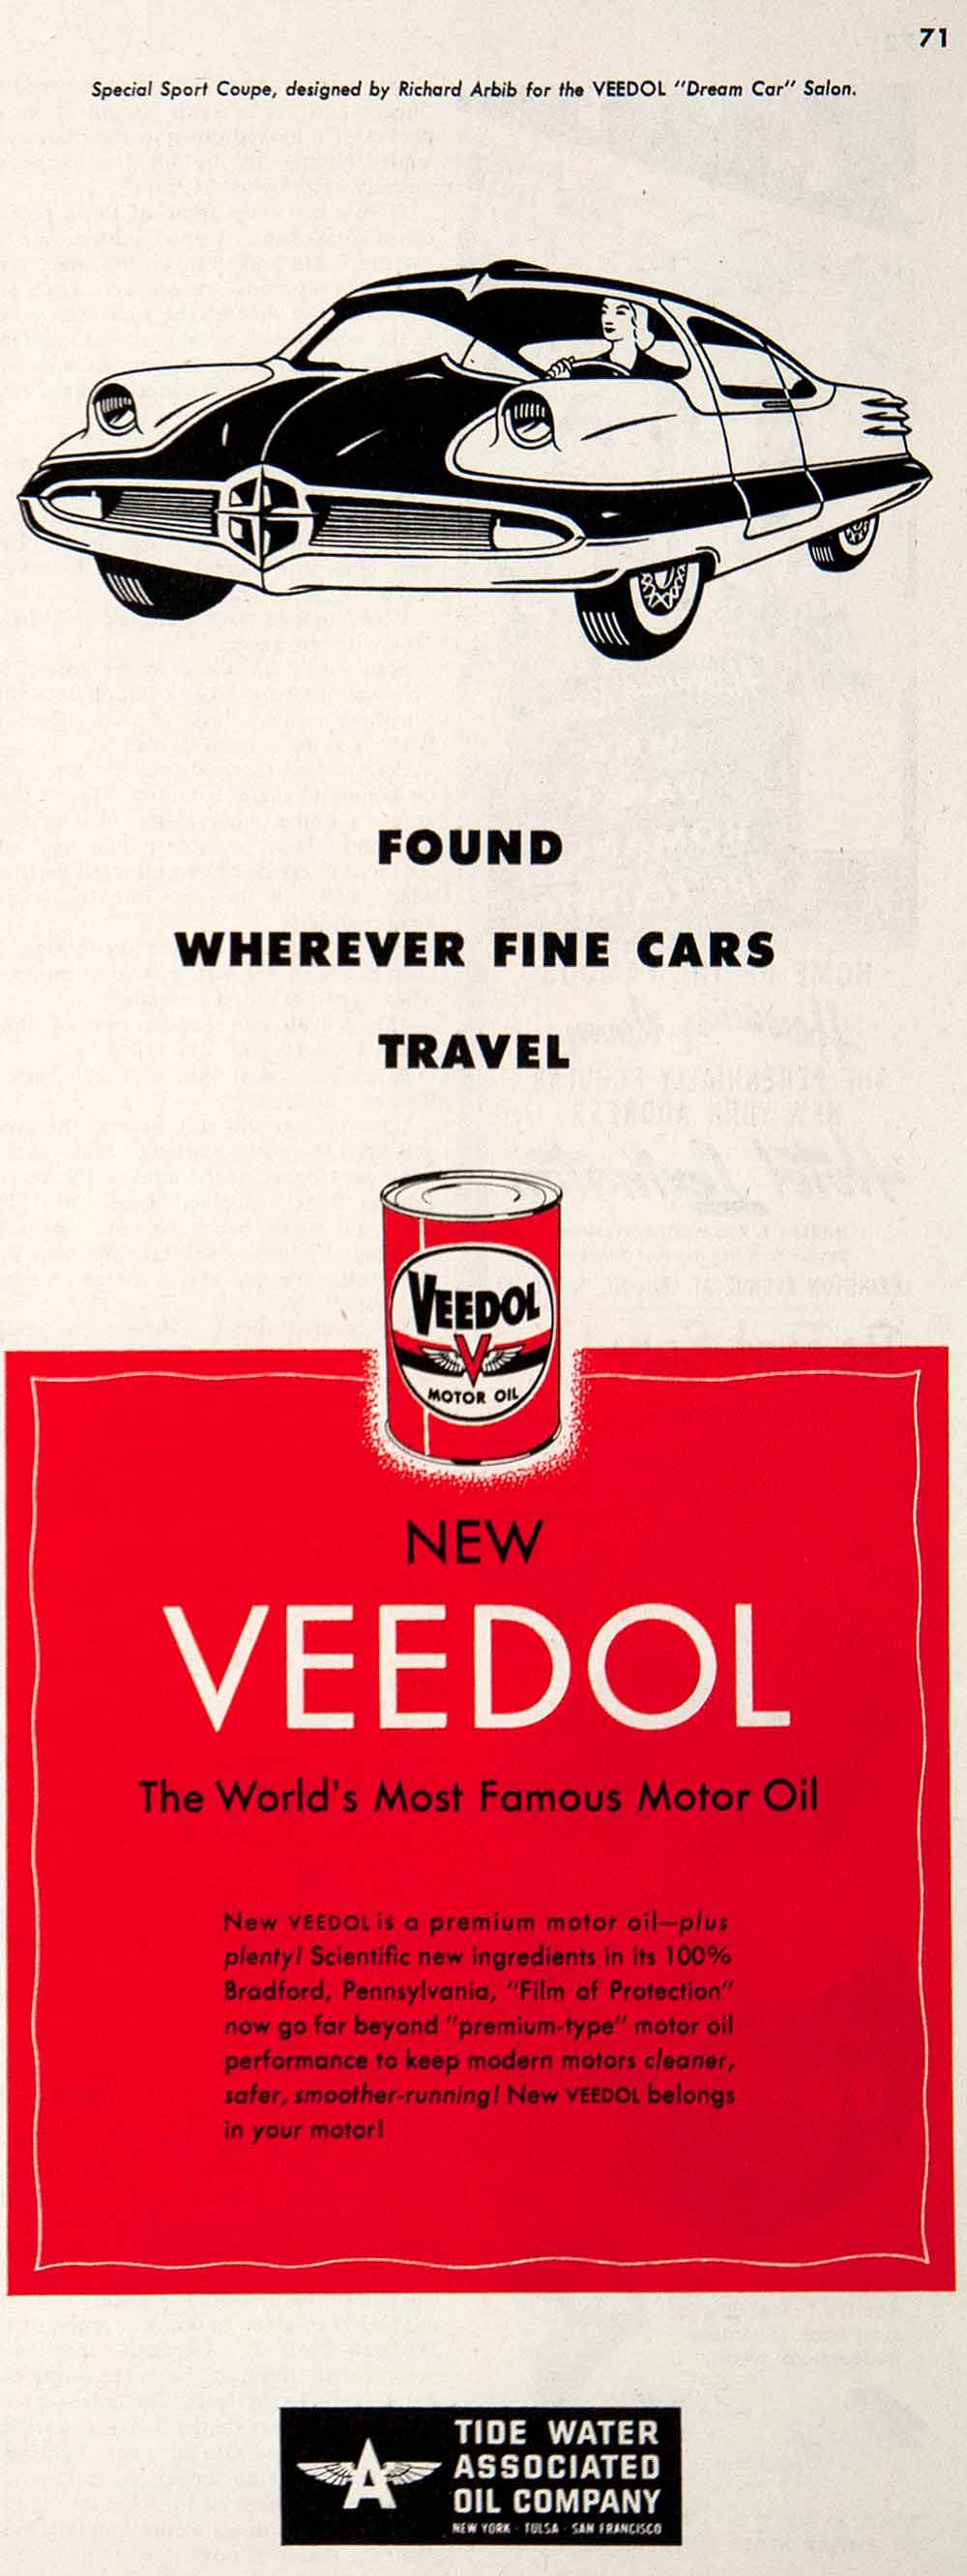 1951 Ad Veedol Motor Oil Tide Water Richard Arbib Special Sport Coupe COLL3